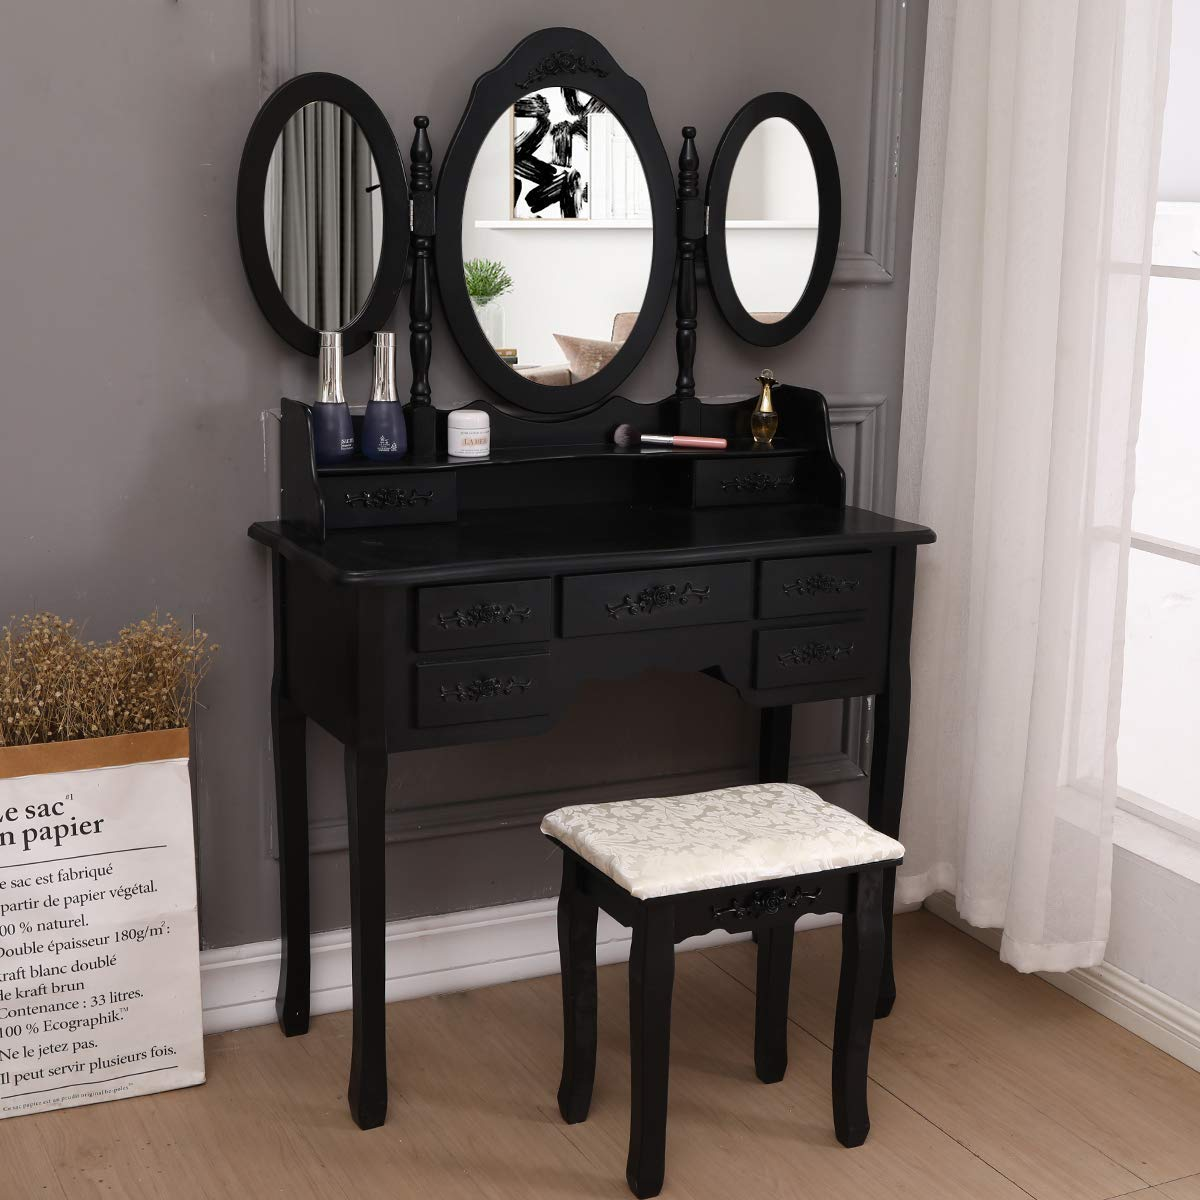 VNAURRY Vanity Set Tri Folding Dressing Table,7 Drawers,Oval Mirror Wood Bathroom Makeup Table Set with Cushioned Stool Black